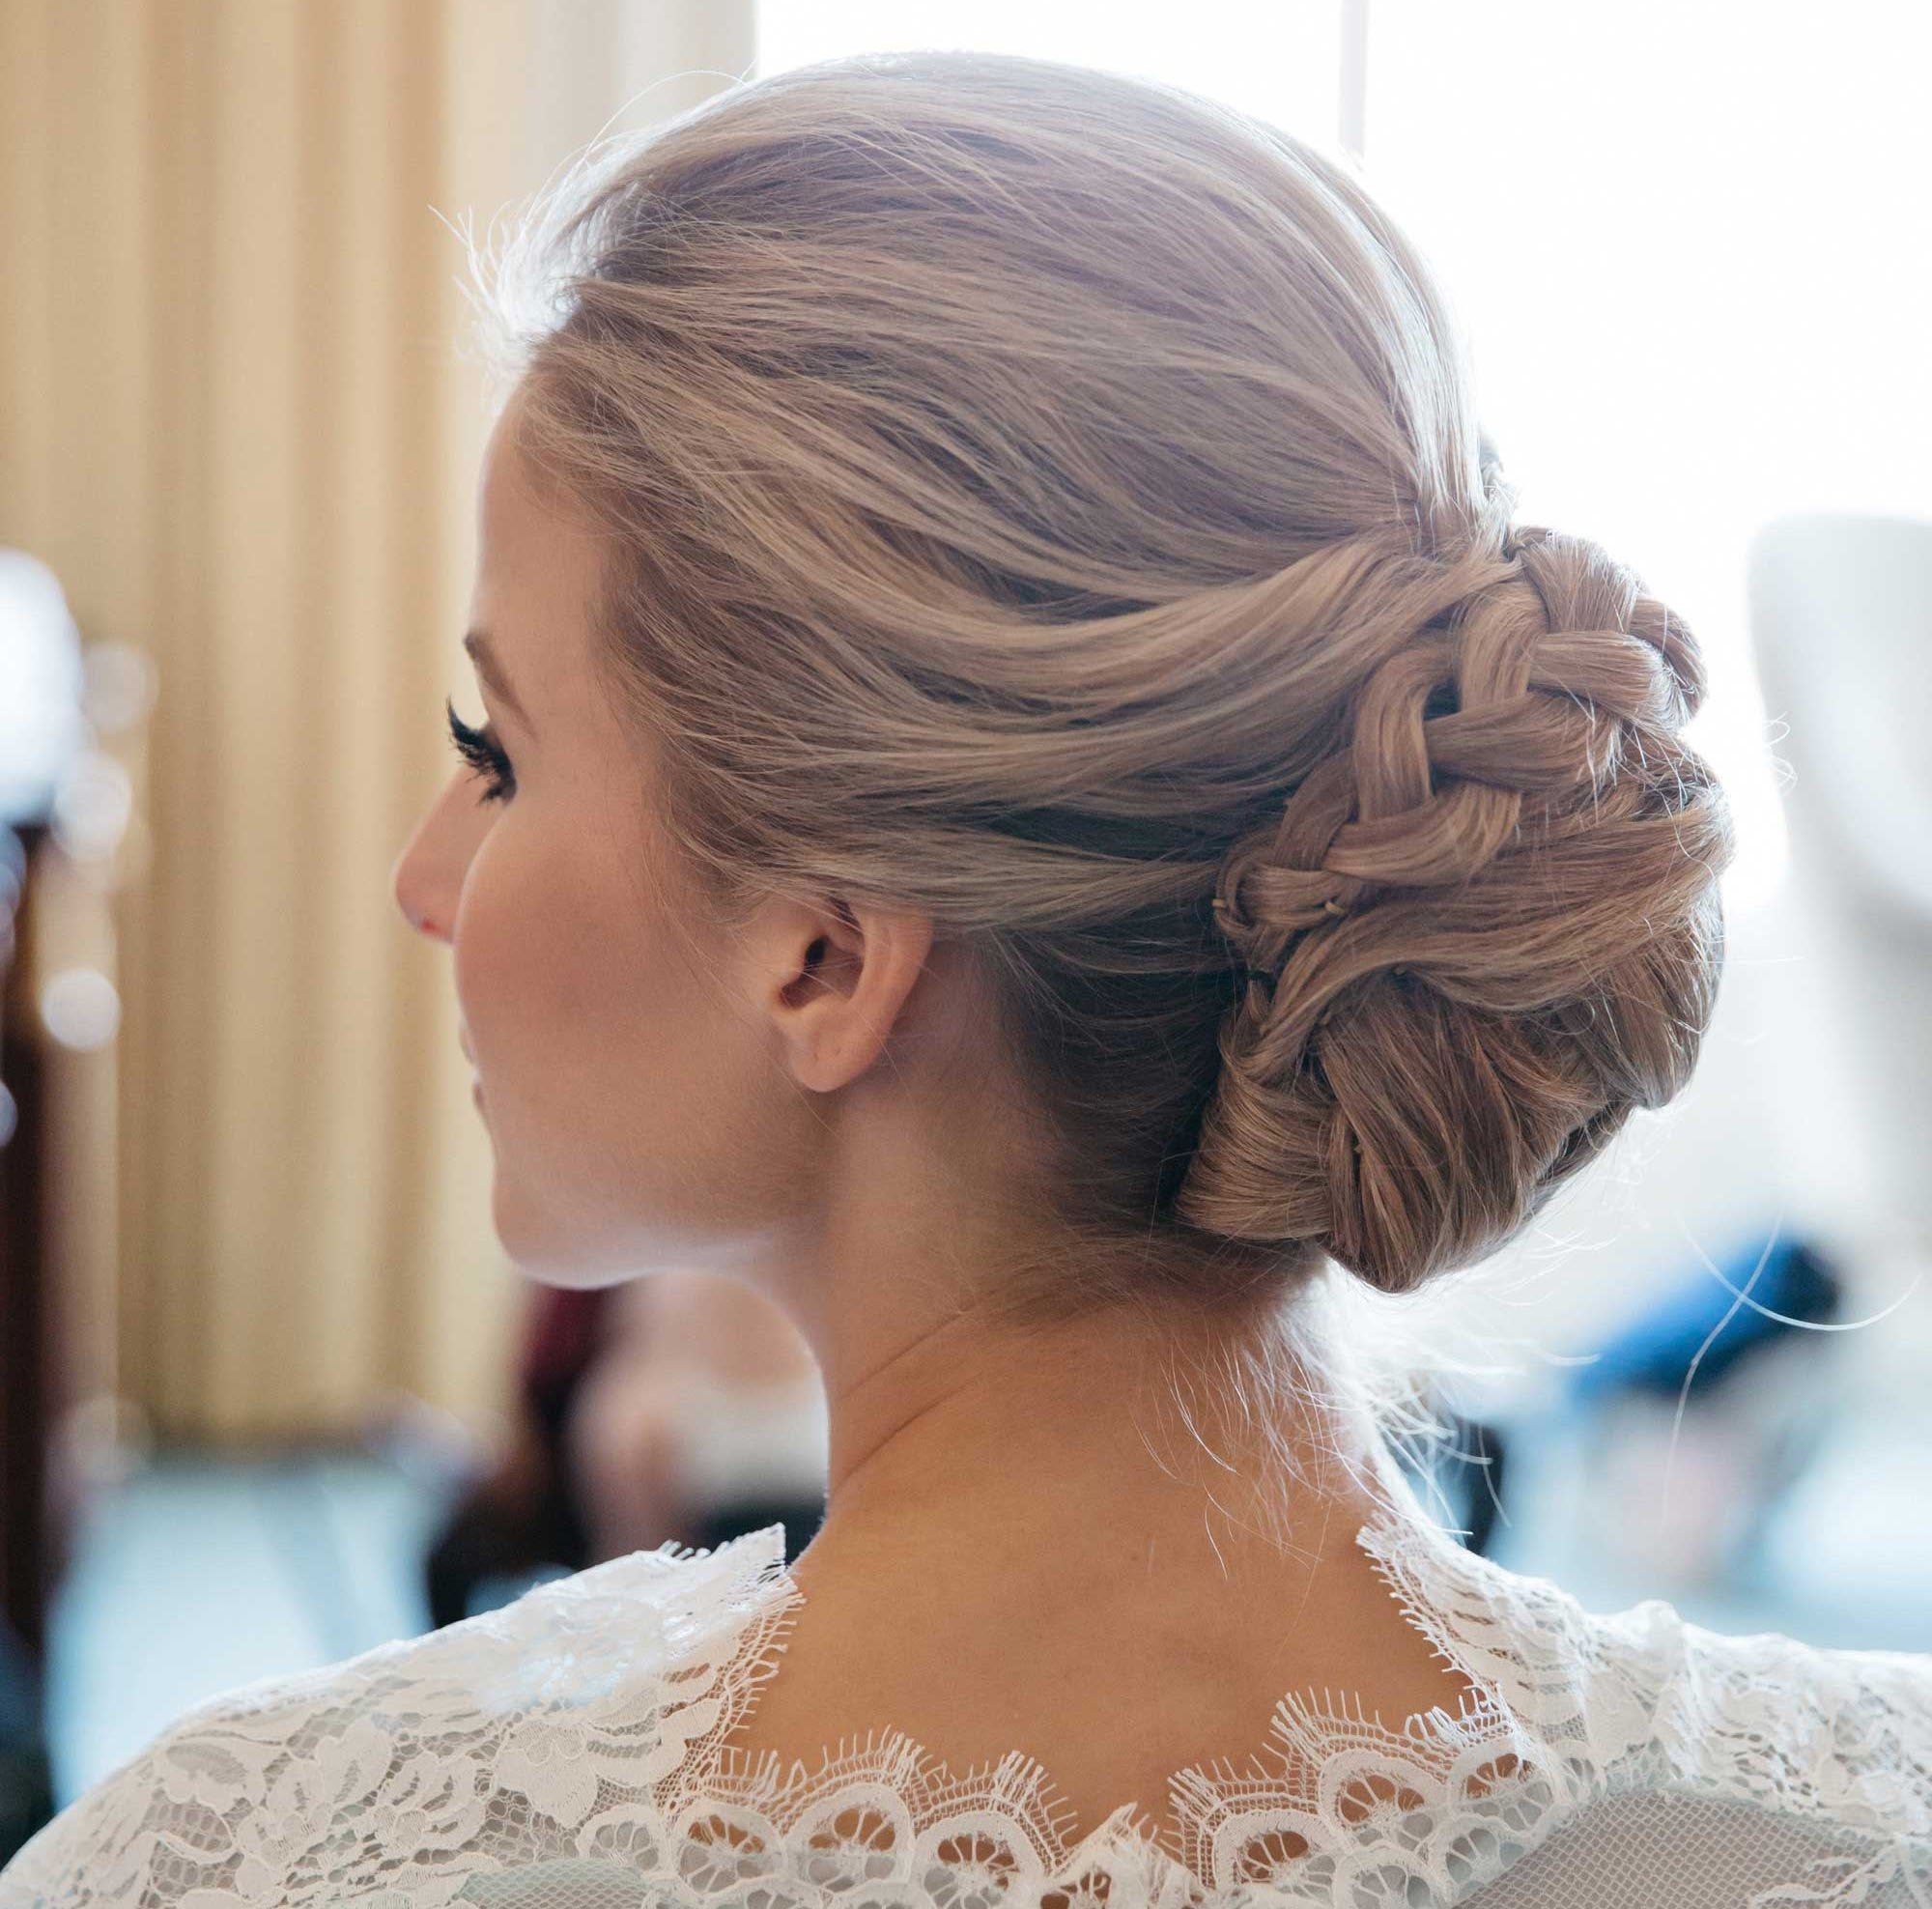 Popular Classic Wedding Hairstyles For Long Hair For Braided Hairstyles: 5 Ideas For Your Wedding Look – Inside Weddings (View 5 of 15)